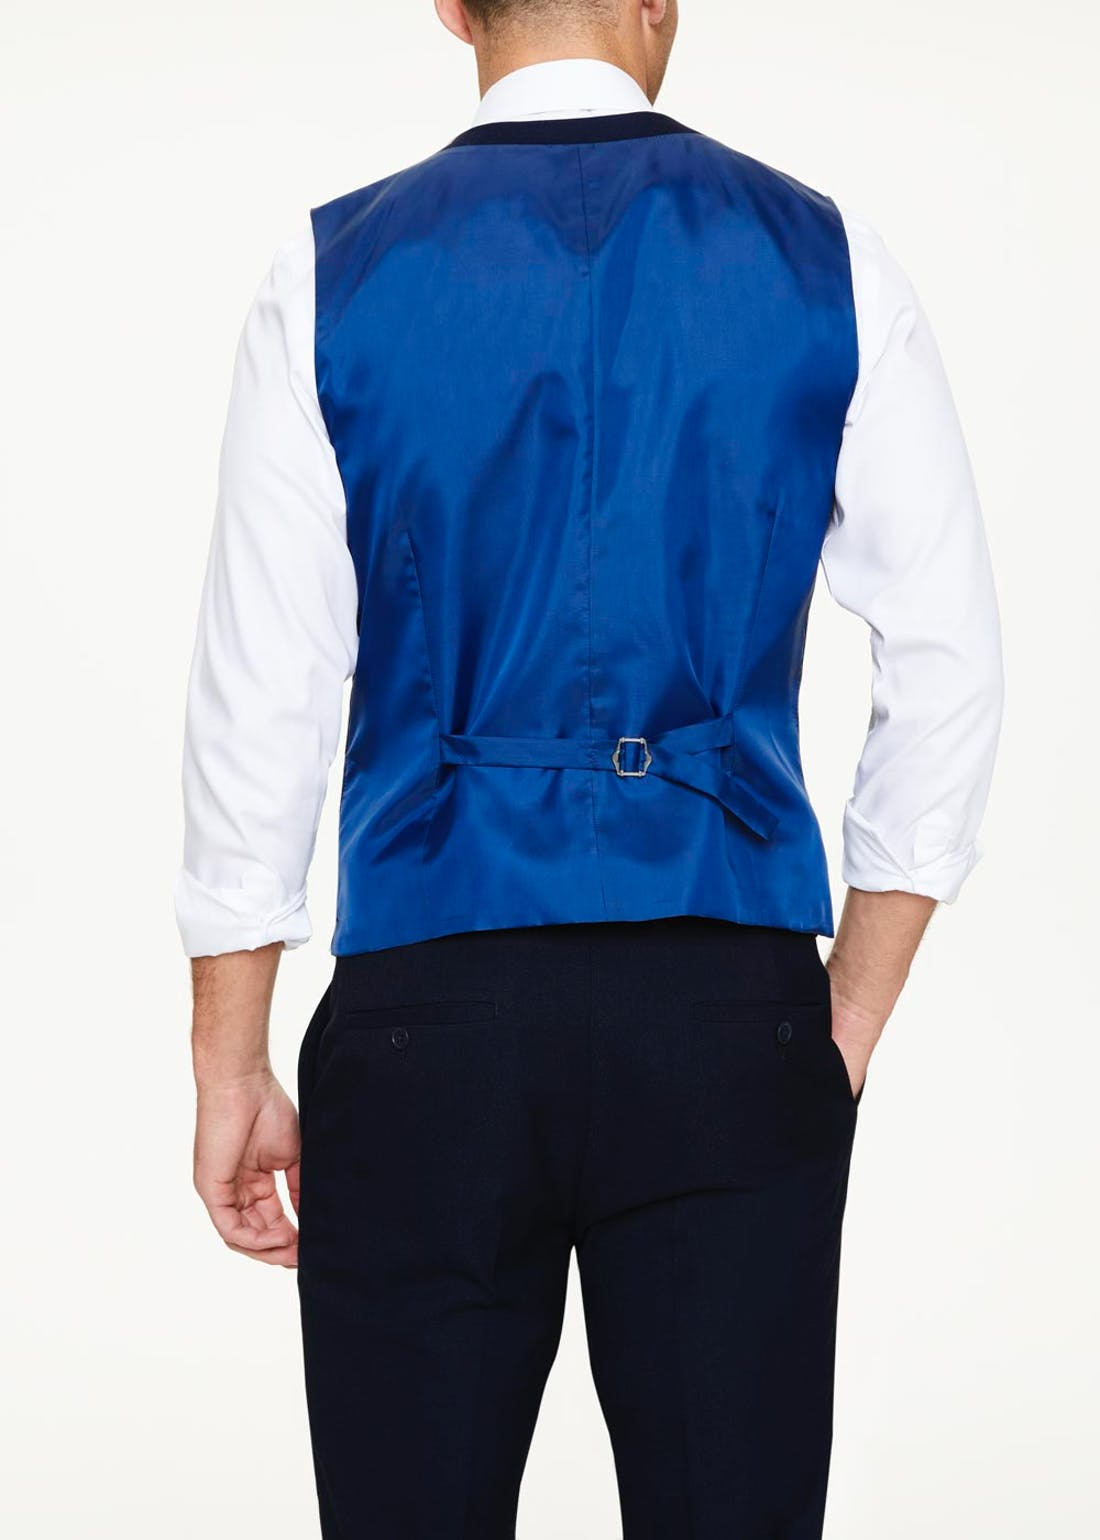 Taylor & Wright Murray Skinny Fit Suit Waistcoat